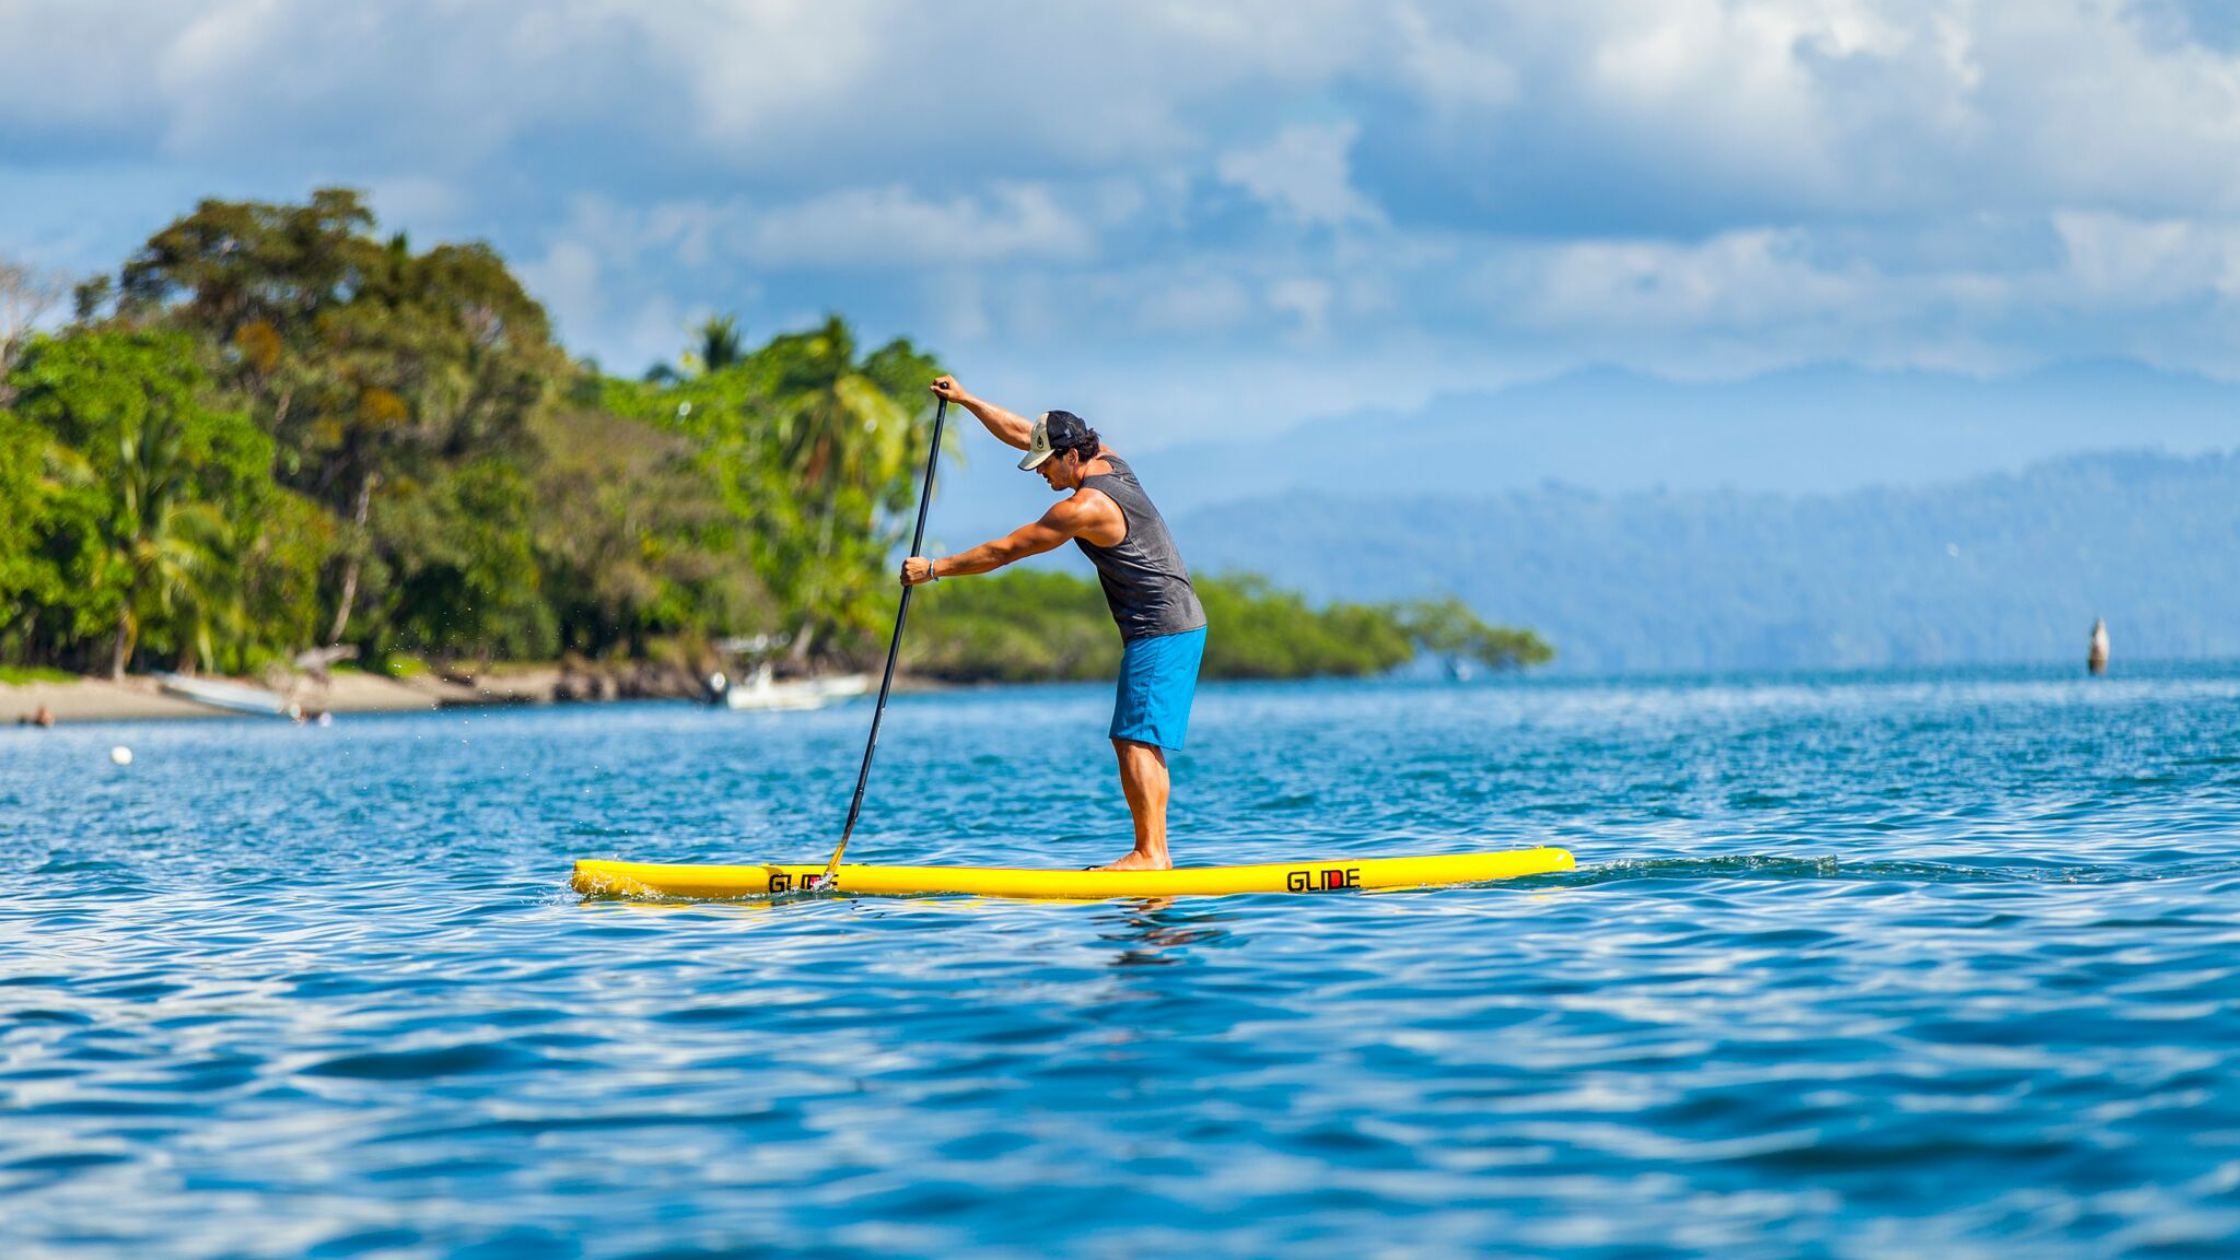 Glide stand up paddle board SUP why you need to quit your gym